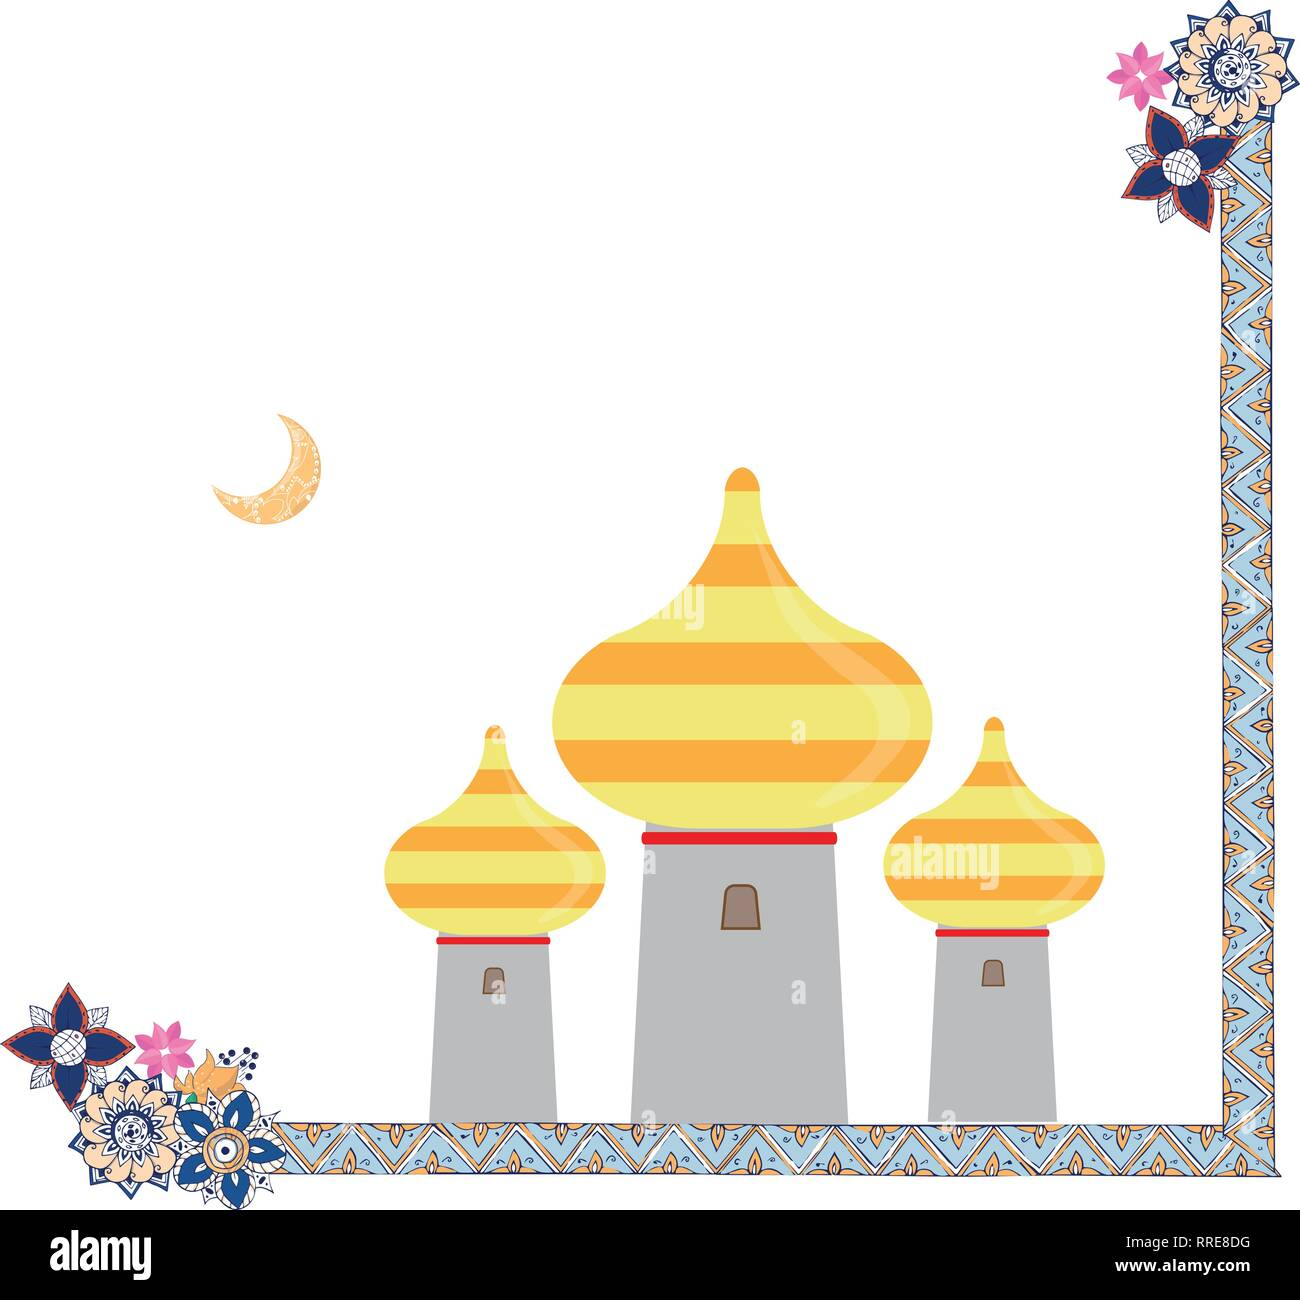 eastern towers art and line with flowers frame illustration on white background - Stock Image